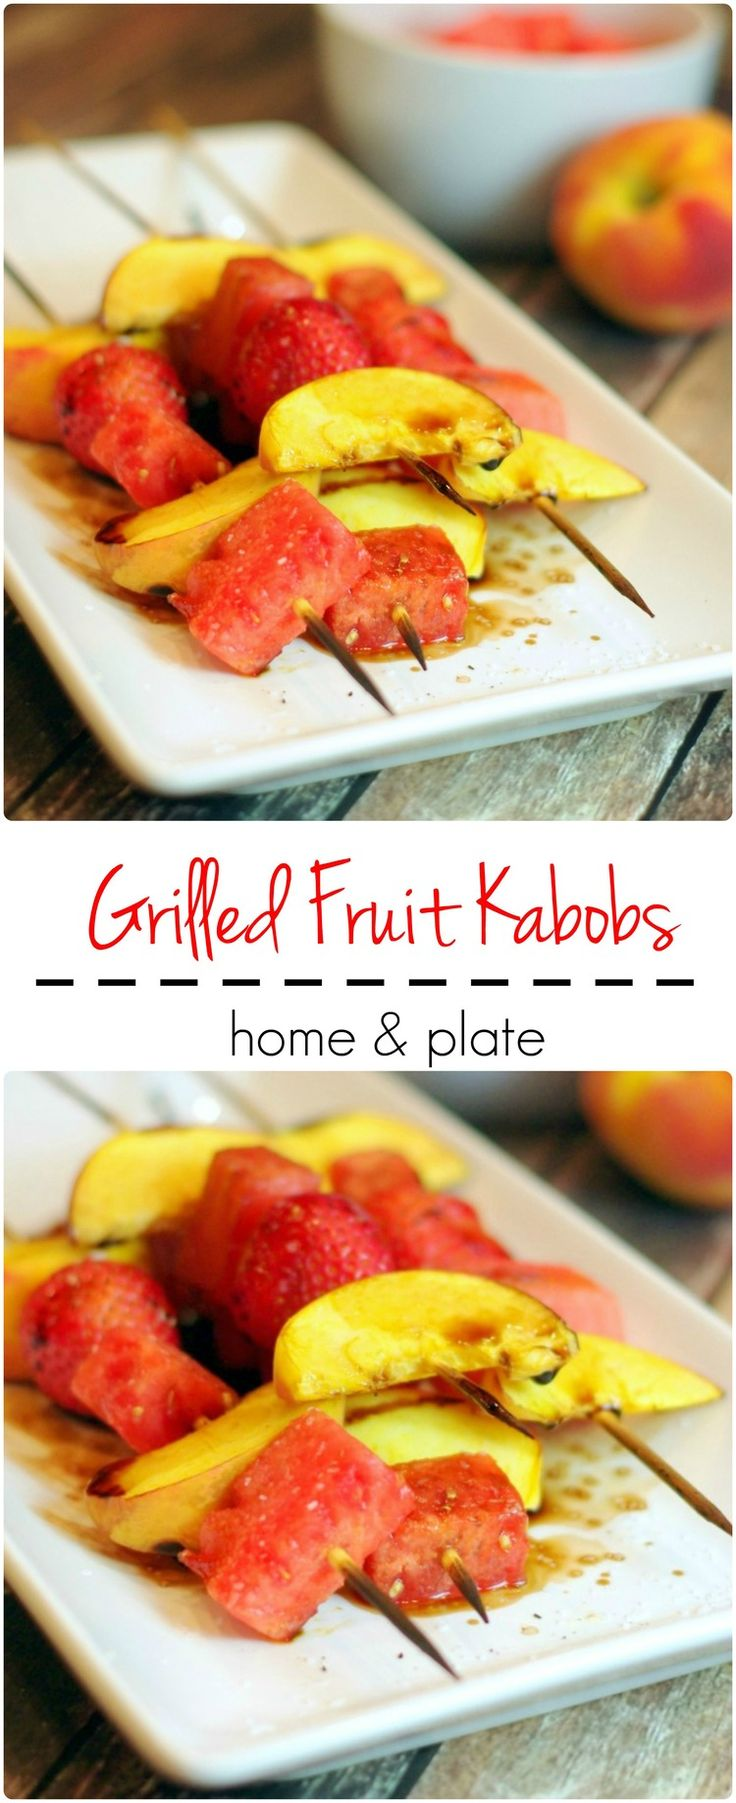 Grilled Fruit Kabobs | Home & Plate | www.homeandplate.com | Enjoy your favorite fruits grilled to perfection.